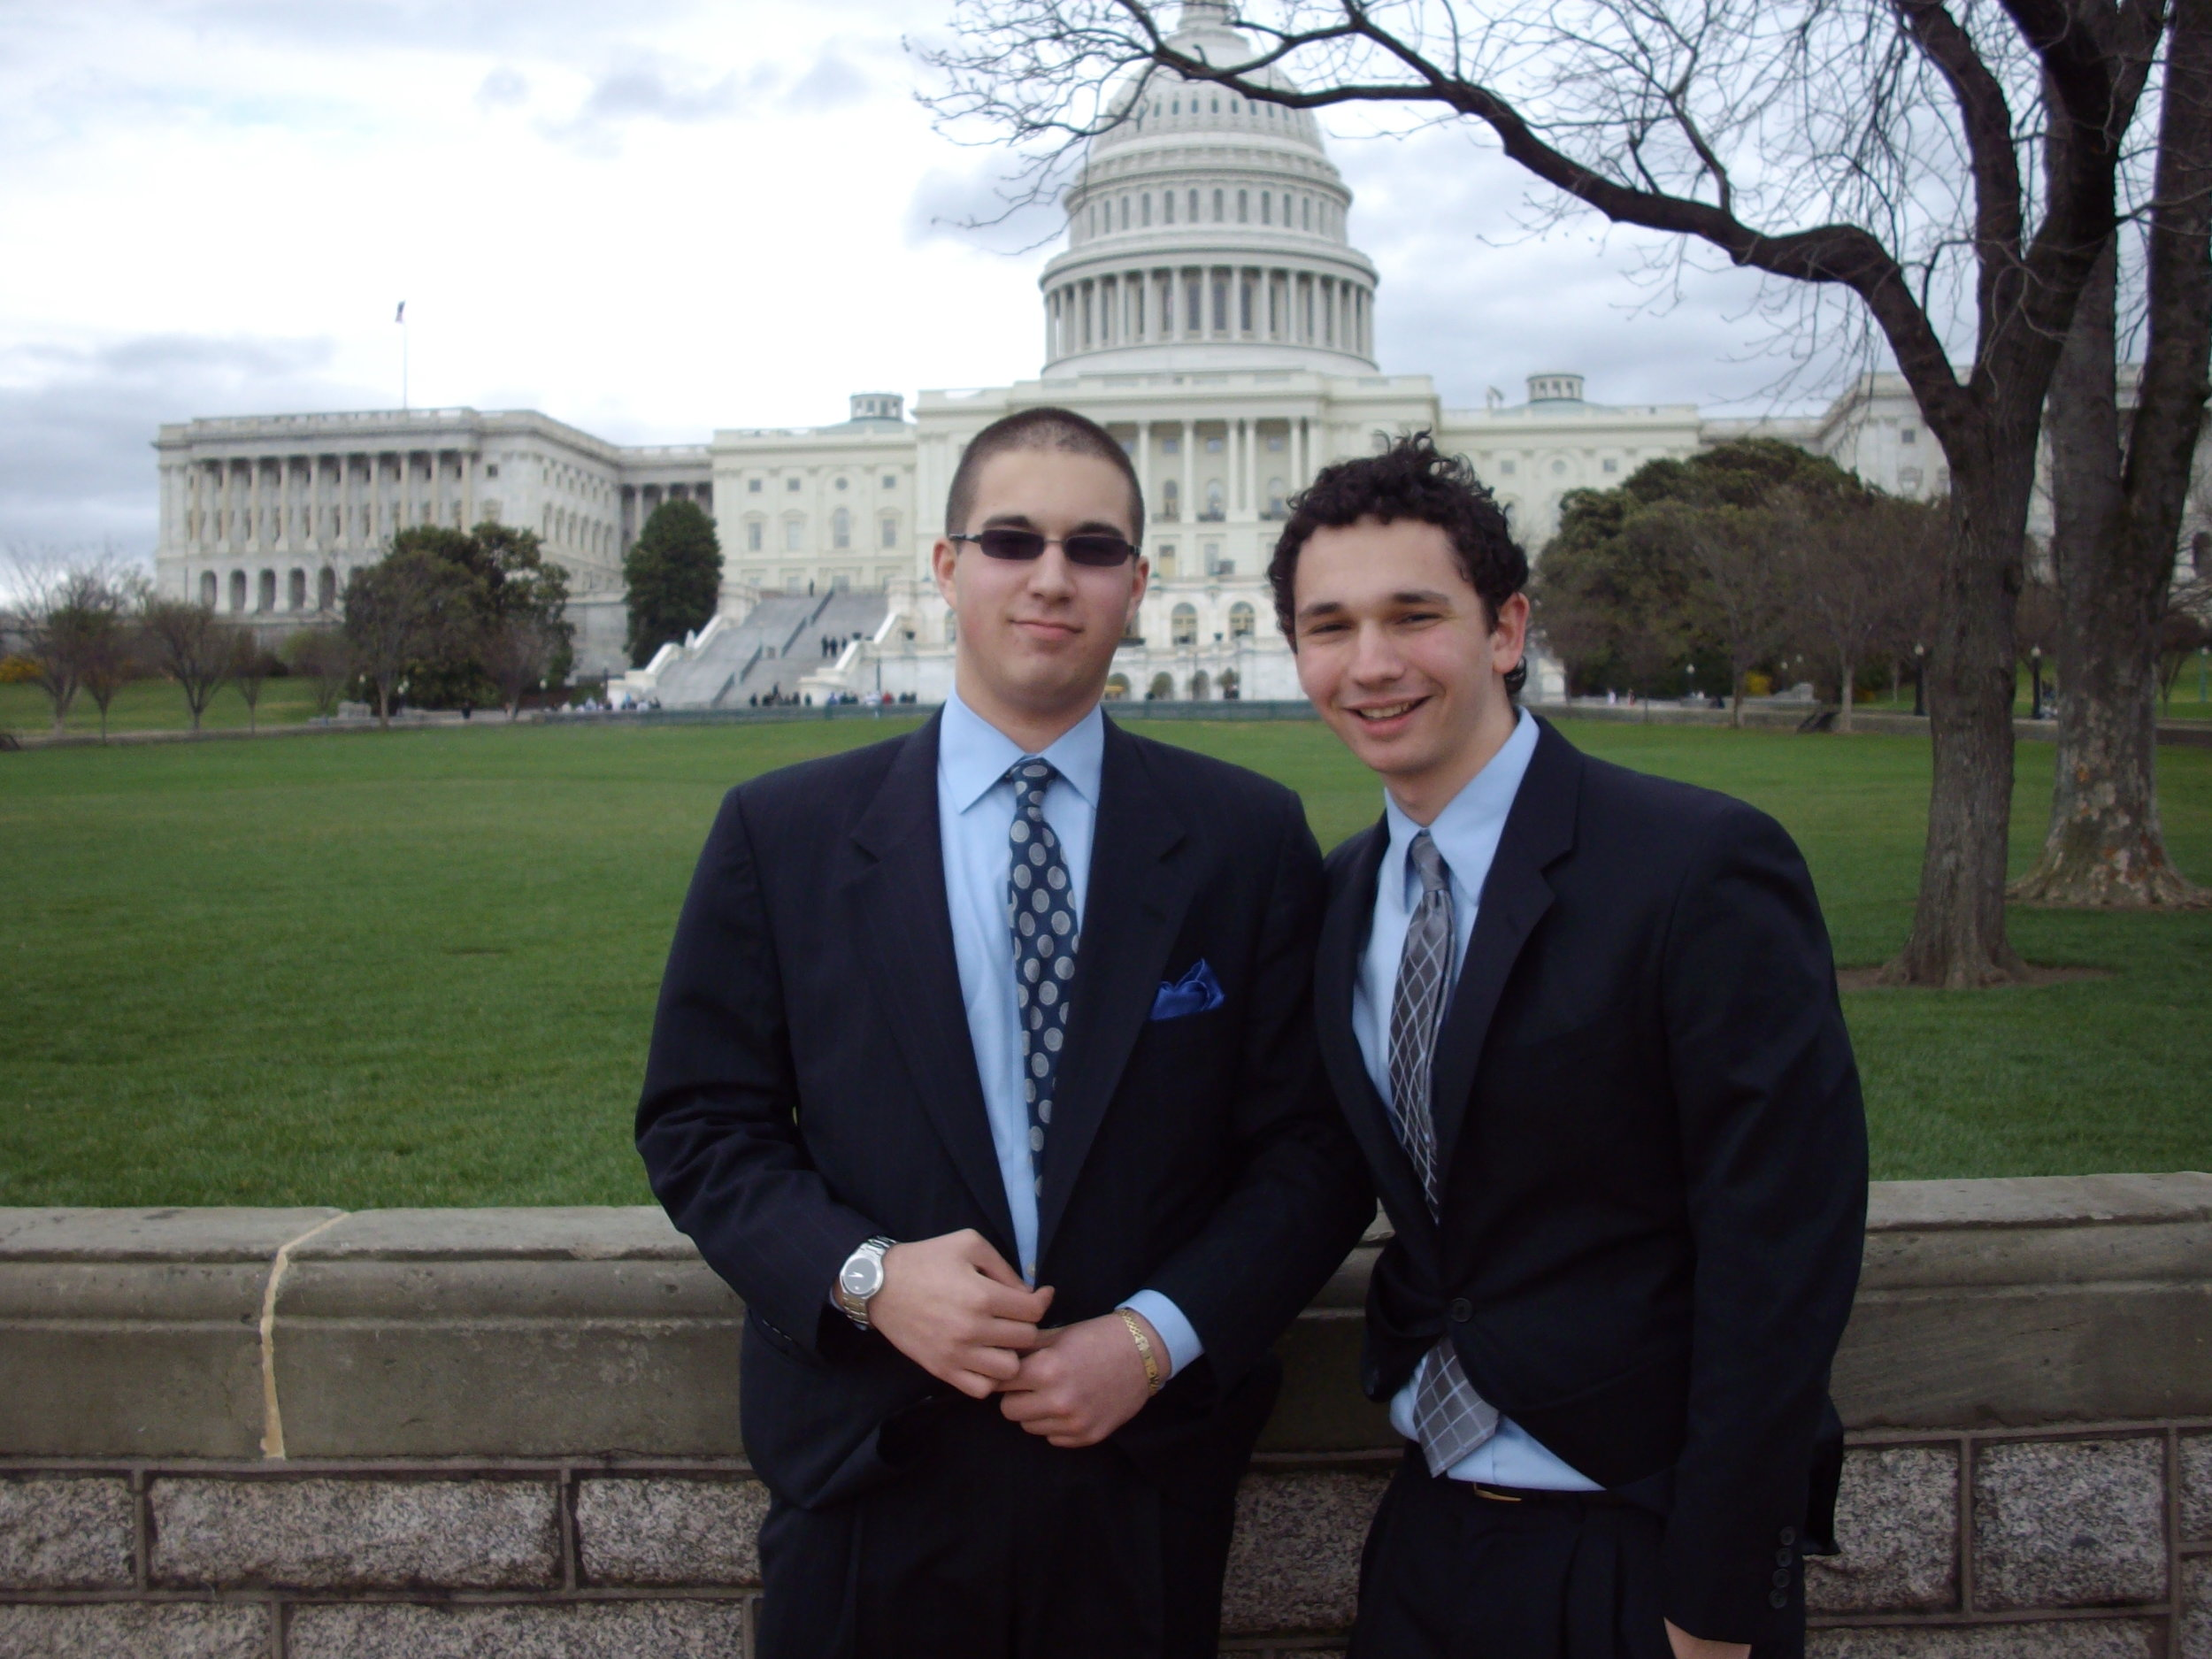 Outside the Capitol Building in Washington, D.C., May 2013